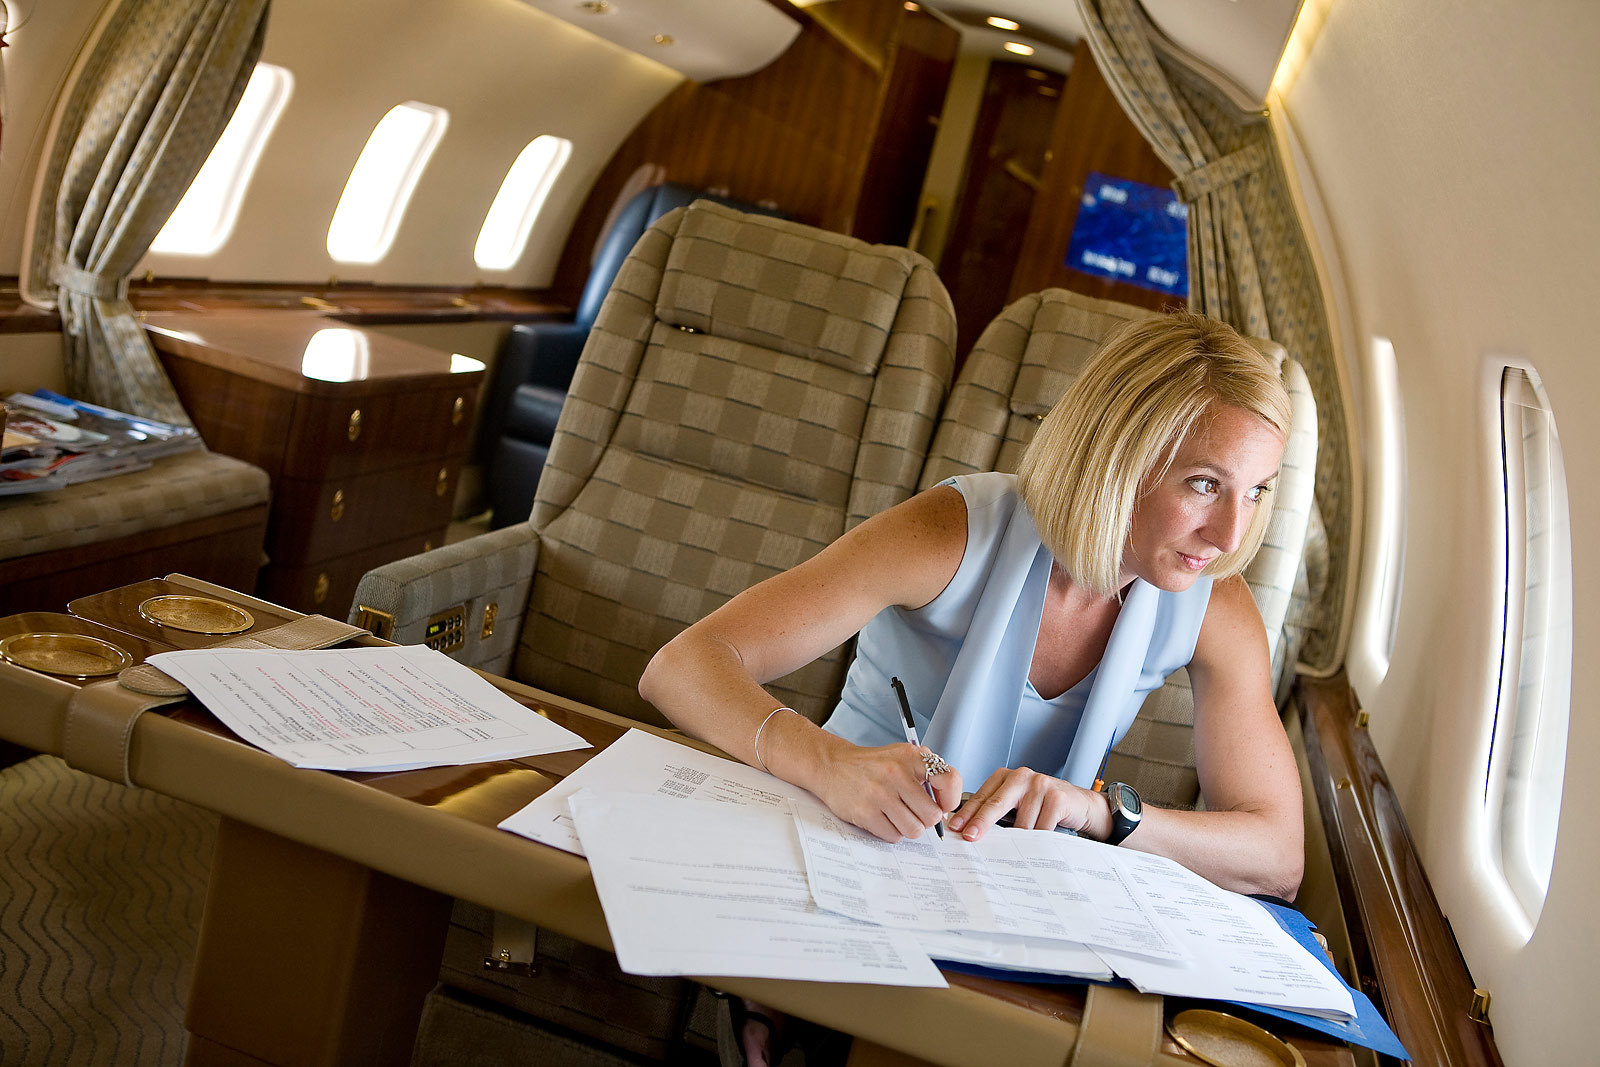 1plane_woman_working.jpg